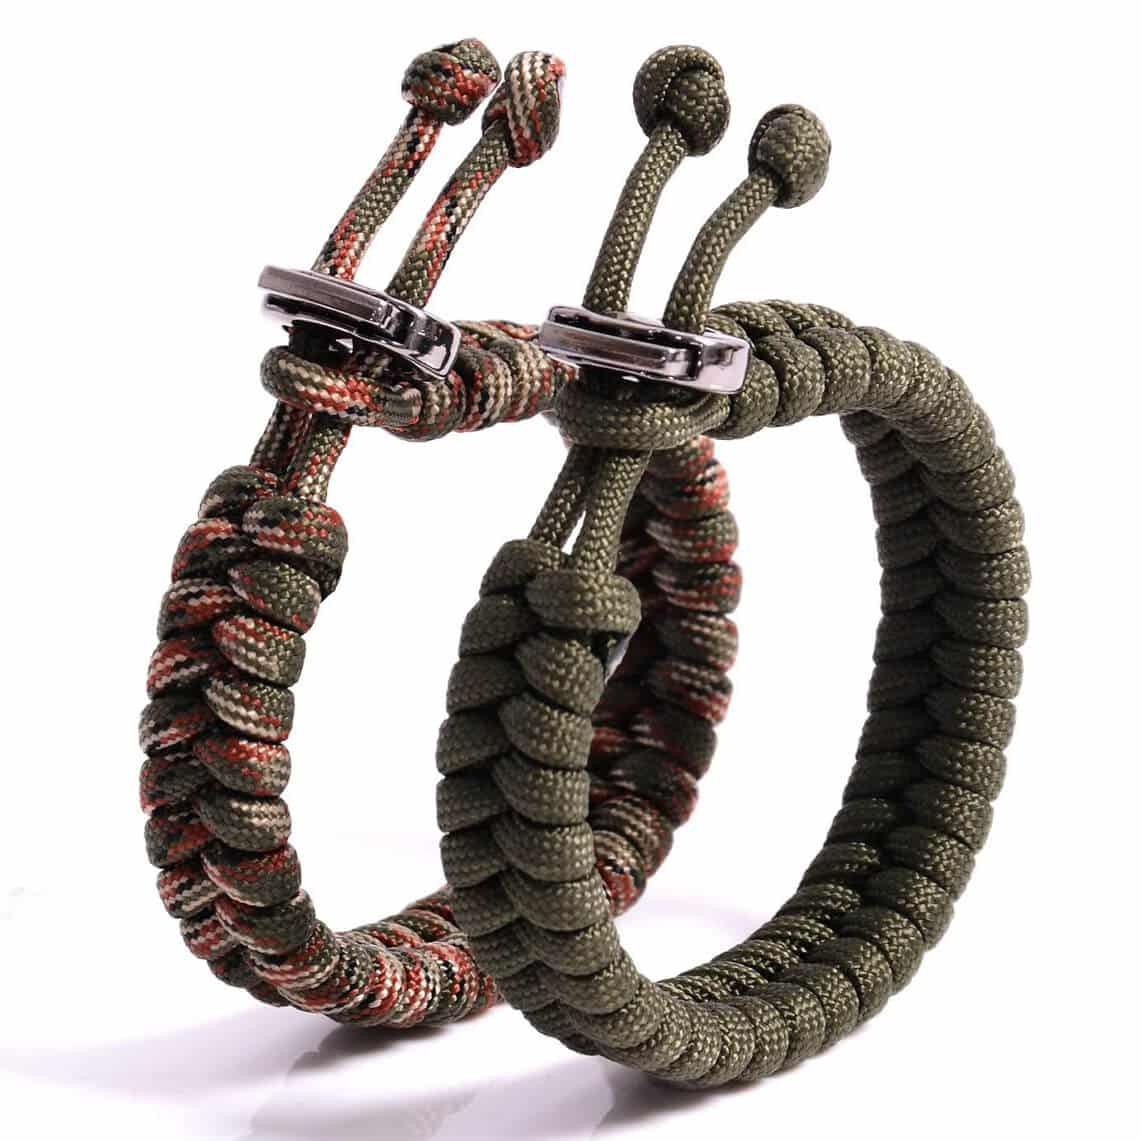 The Friendly Swede Fish Tail Paracord Survival Bracelets with Metal Clasp